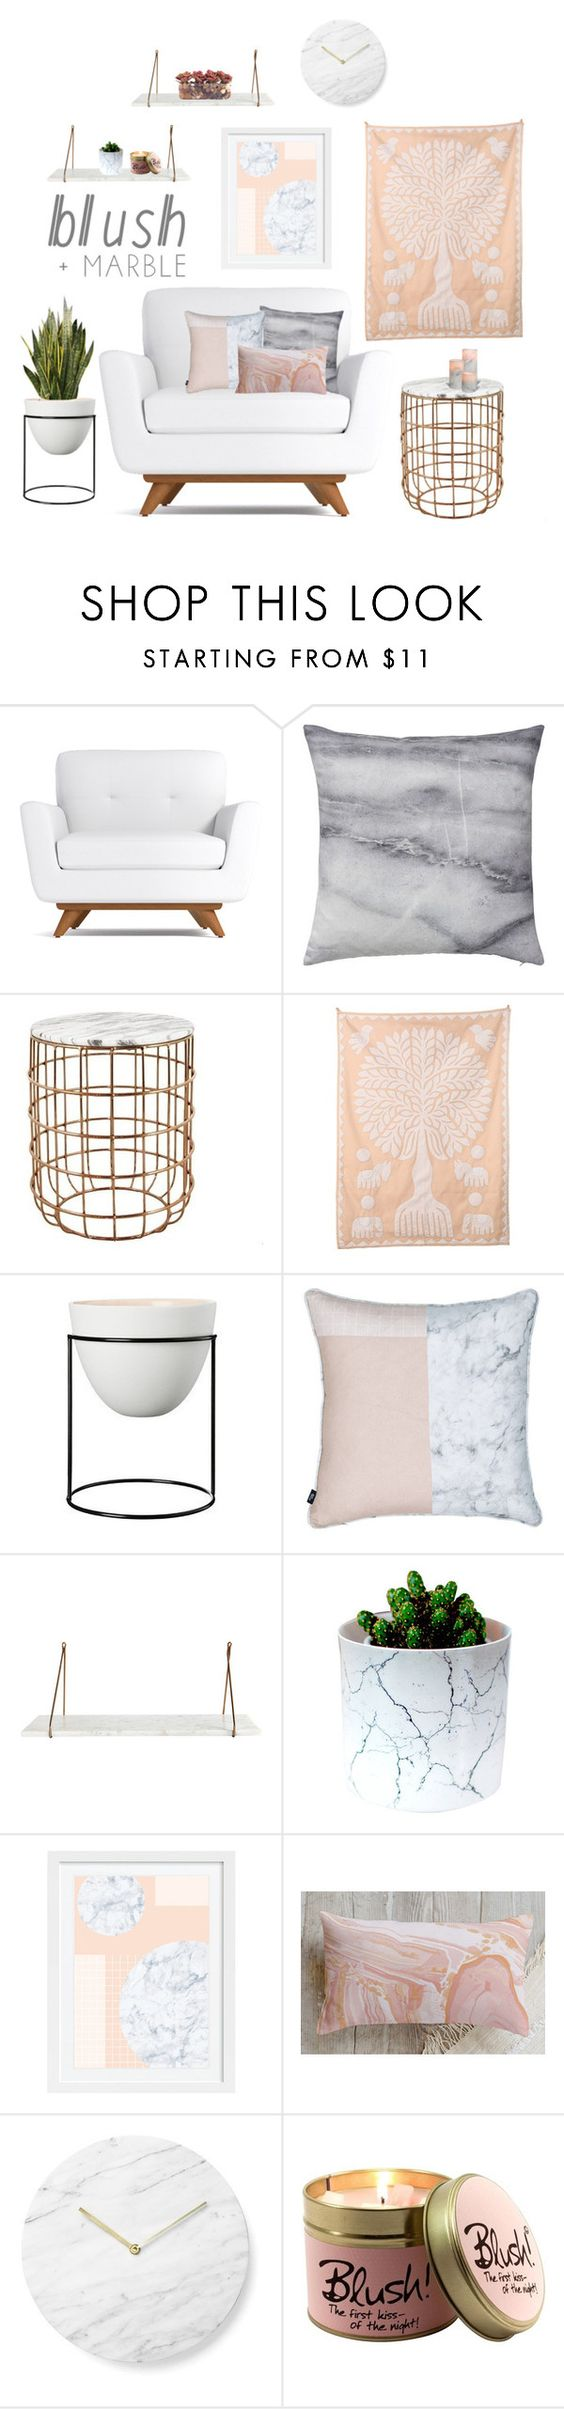 #blush+marble by tothineownselfbtrue on Polyvore featuring interior, interiors, interior design, home, home decor, interior decorating, Cultural Intrigue, WALL, Menu and Bloomingville